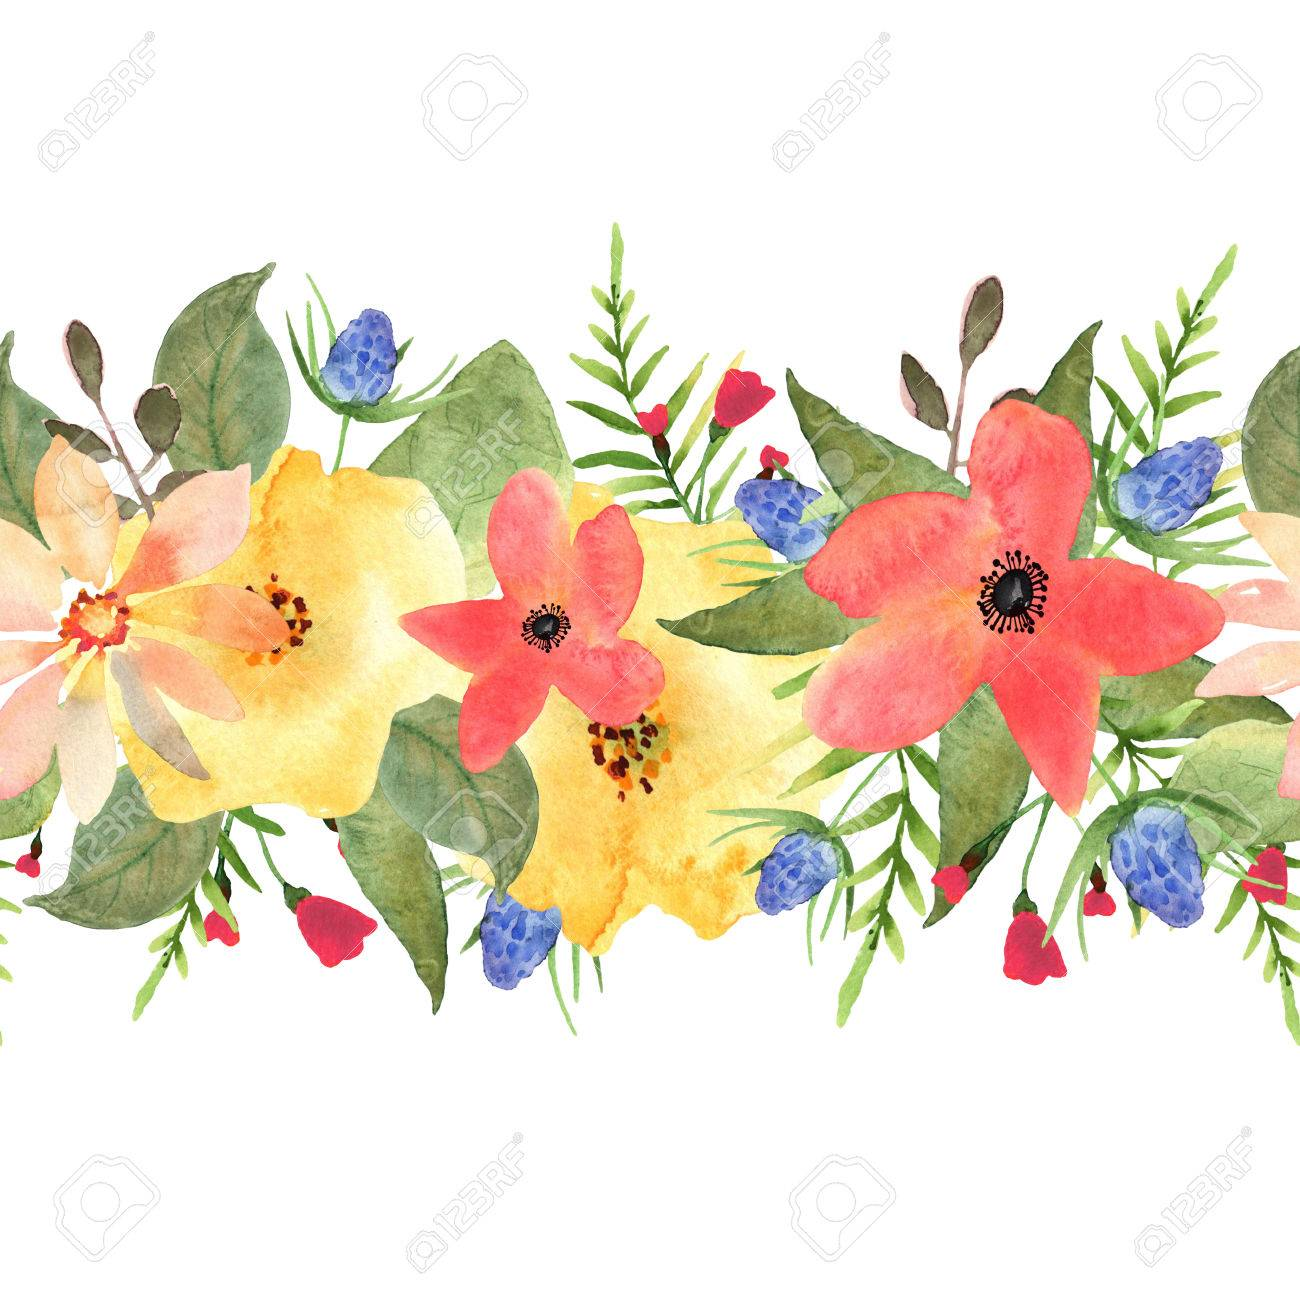 seamless floral border roses and wild flowers drawn watercolor rh 123rf com Filigree Flower Border Clip Art Hawaiian Flower Border Clip Art